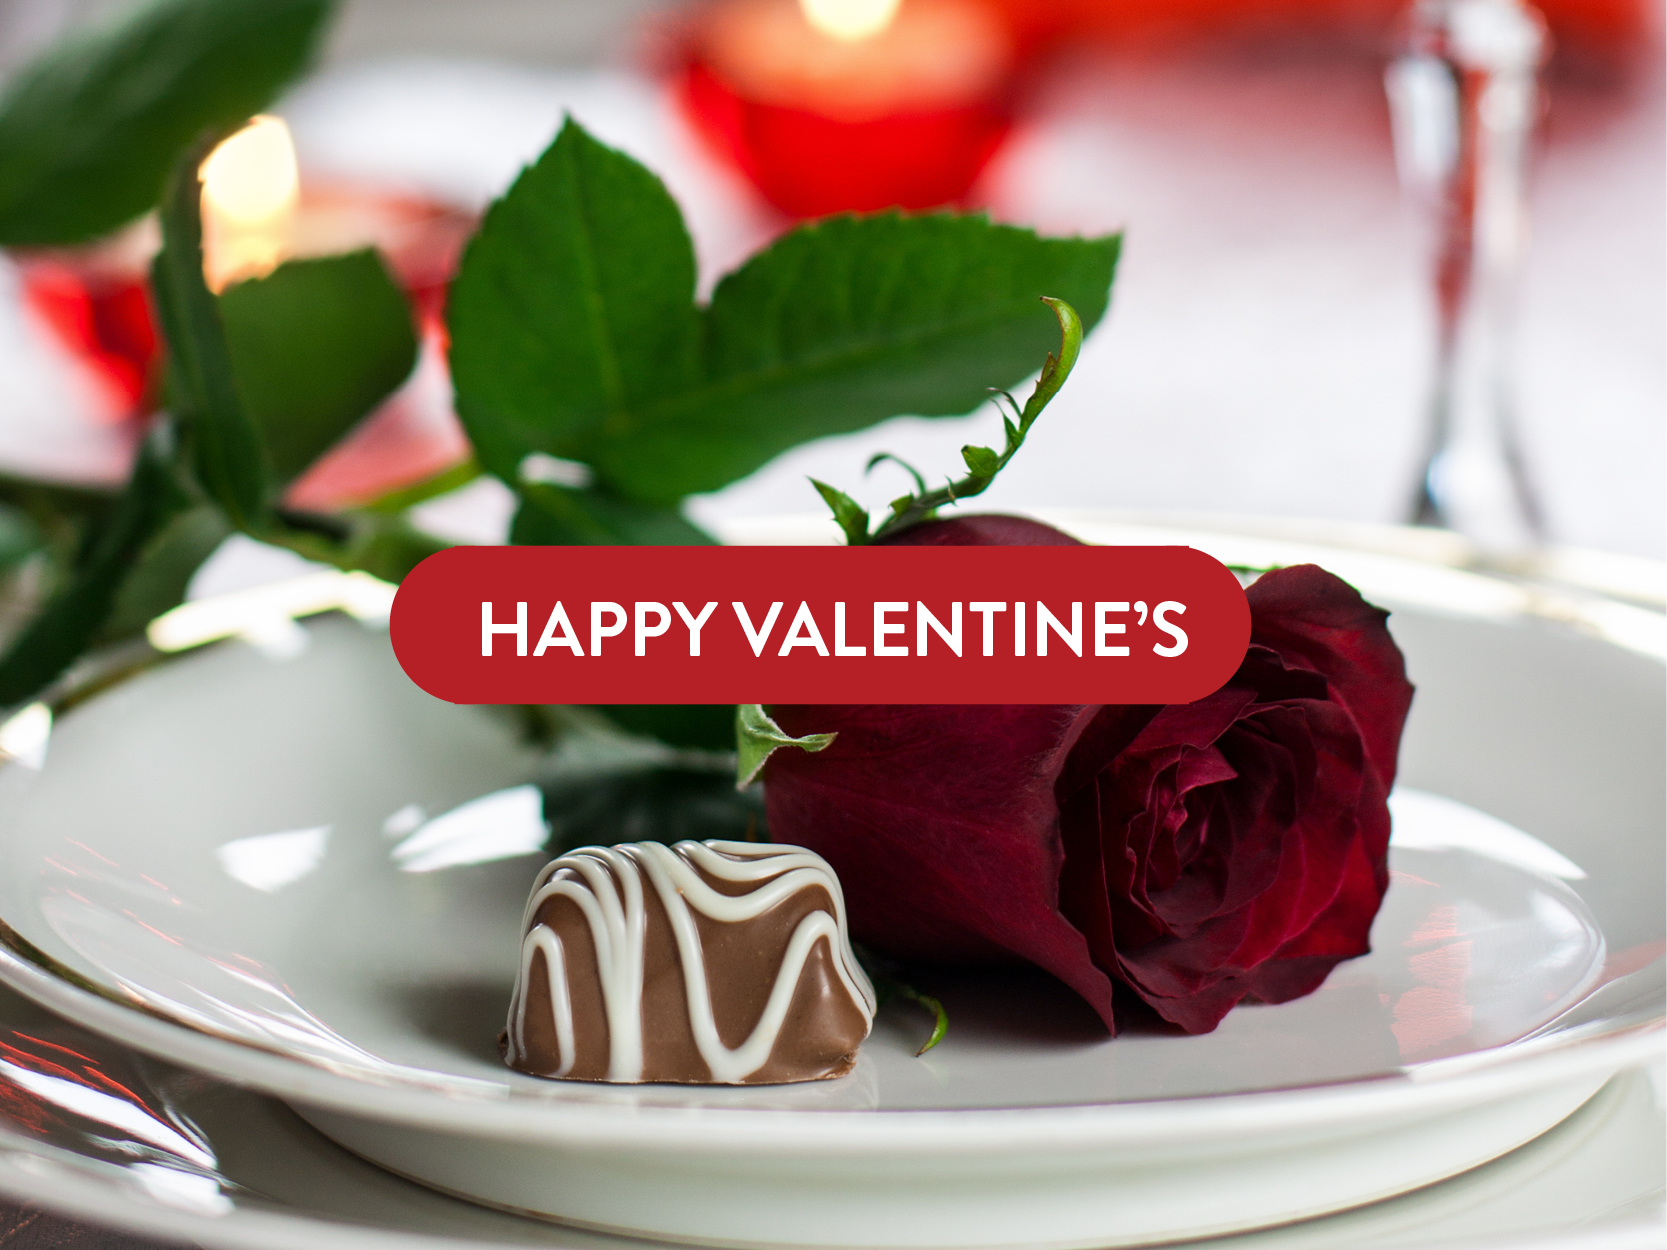 Shanghai | Get a FREE Rose & Chocolates with Every Order this Valentine's Day